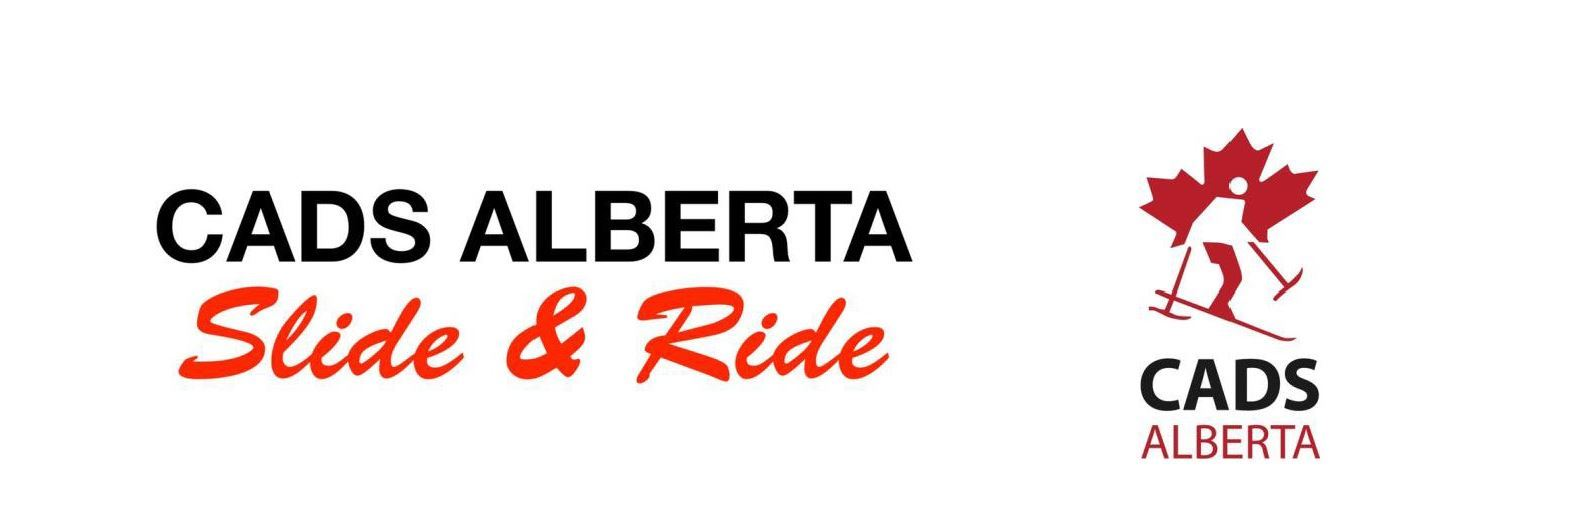 Cads Alberta Slide and Ride